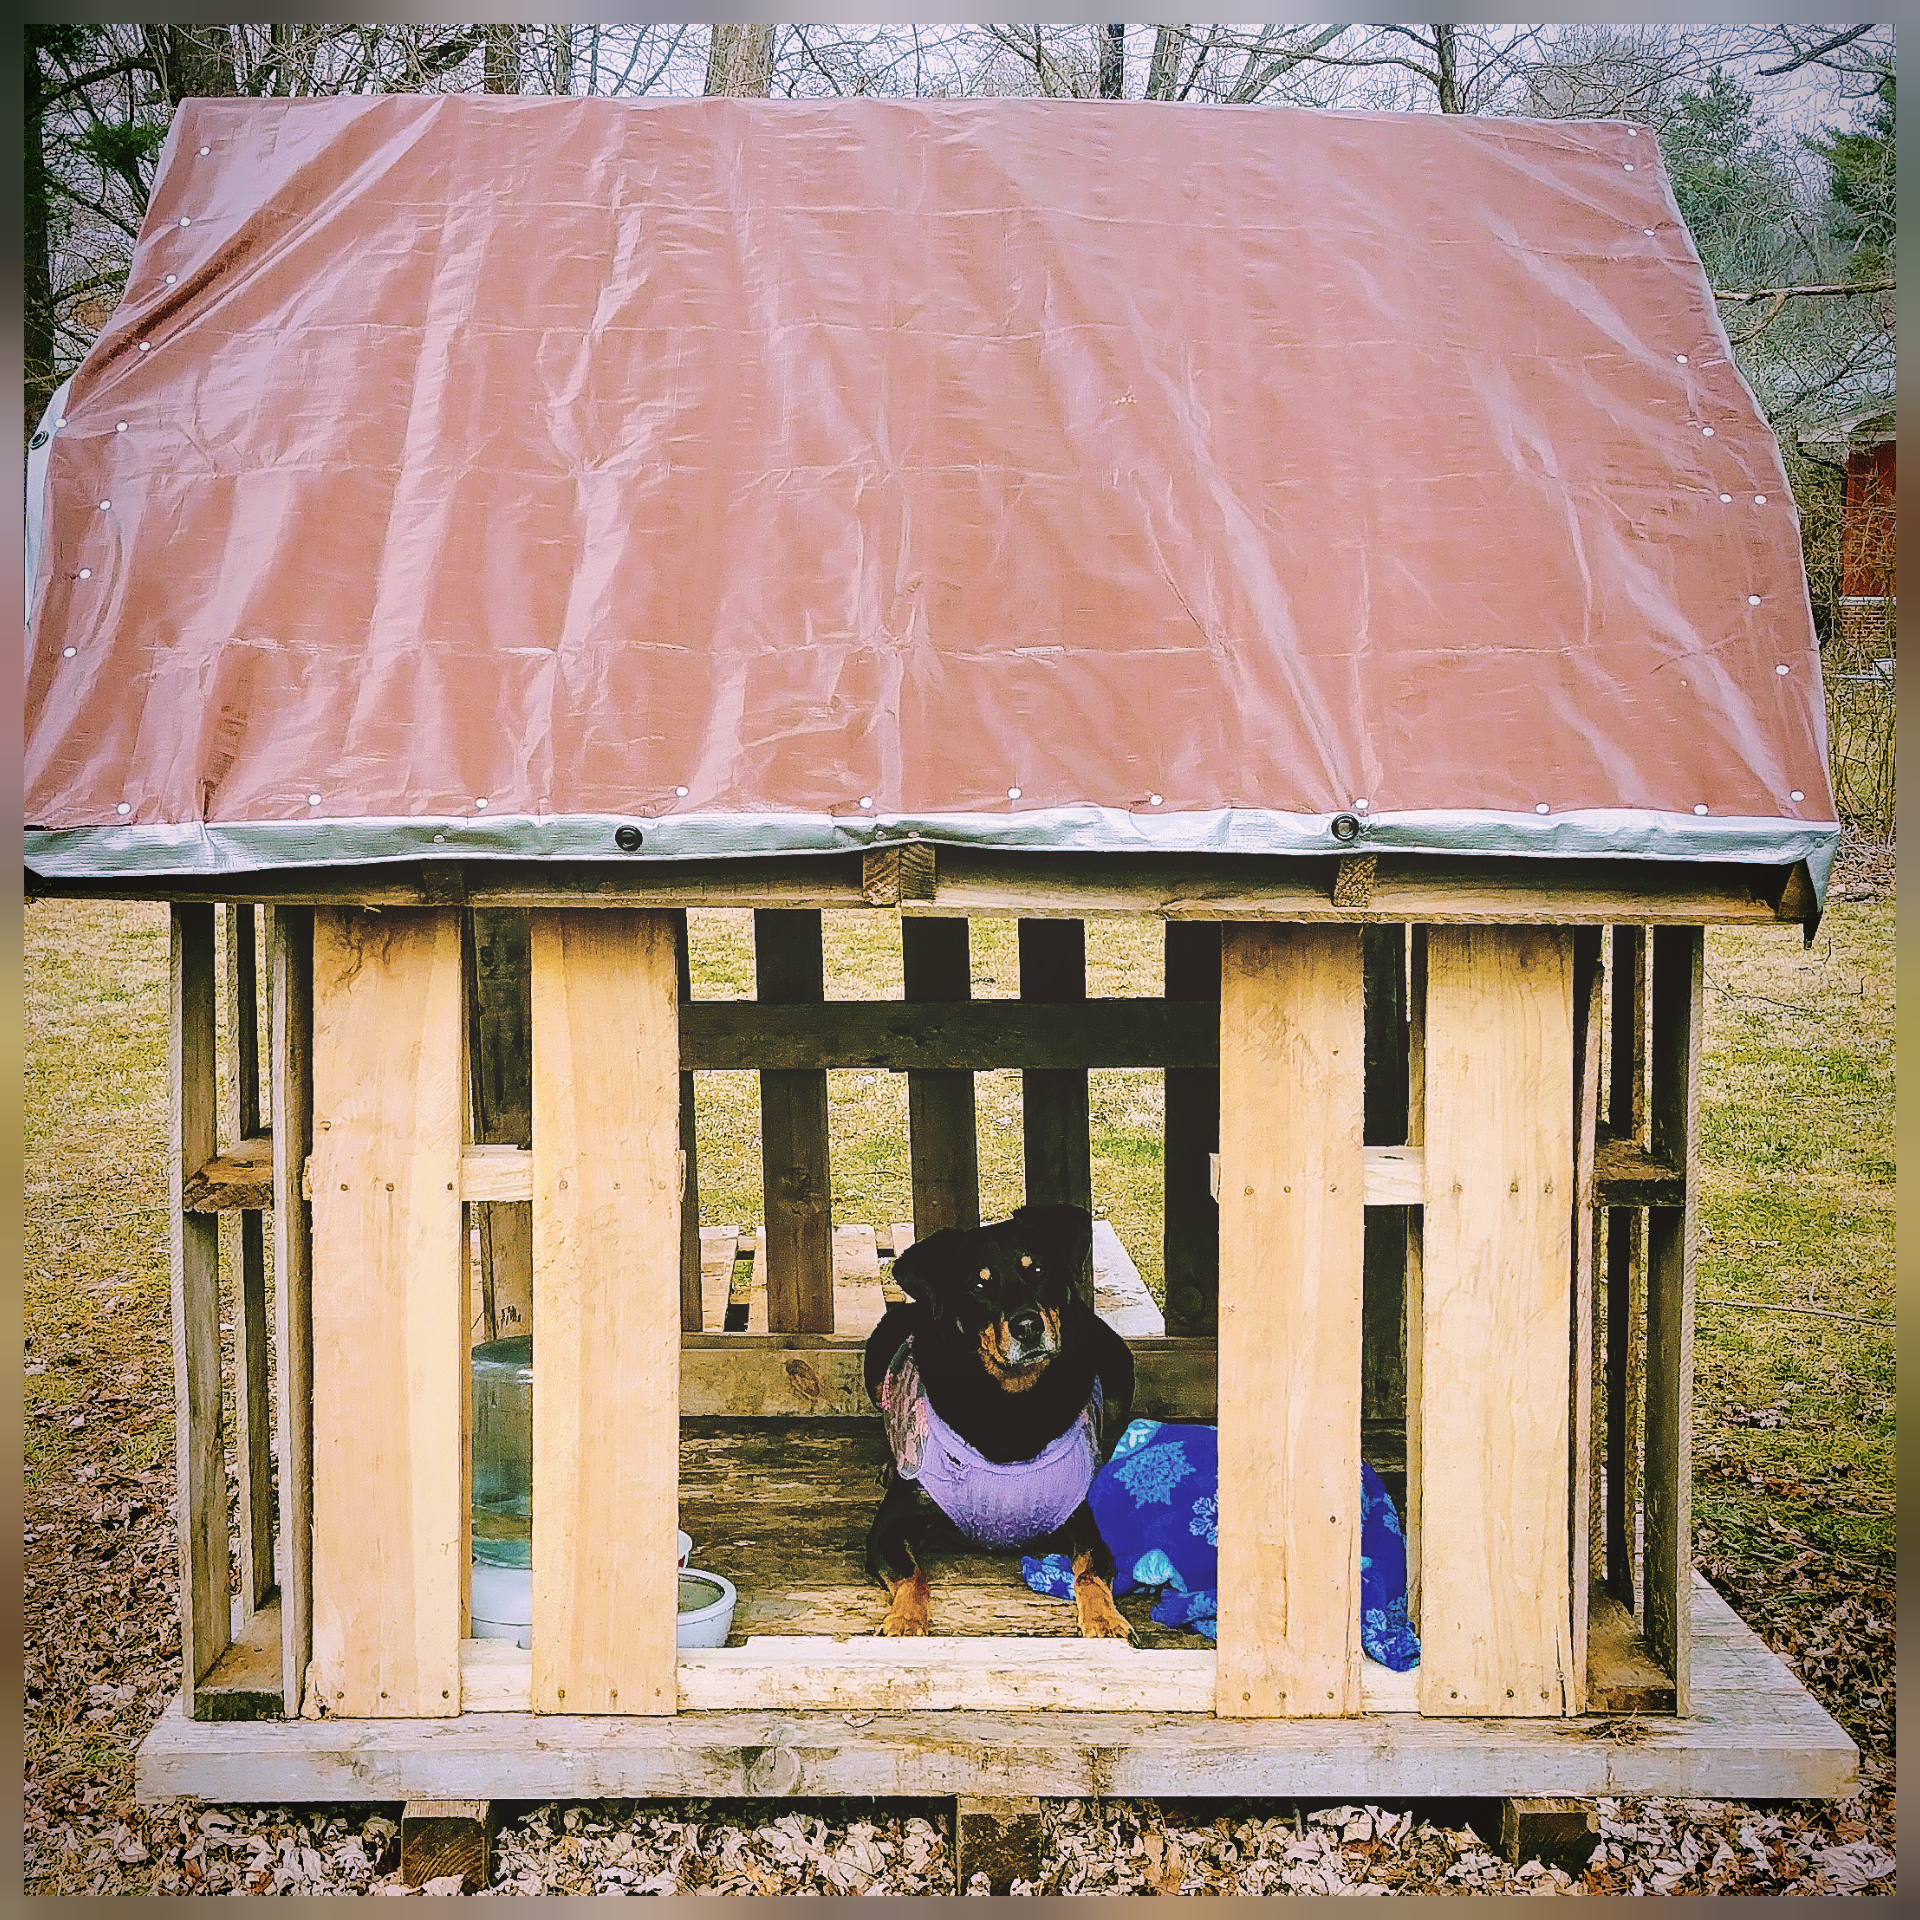 Esri's House - This is a 6x8x6 foot dog house I built using 8 pallets, 2 treated wooden studs, 60 screws, 60 roofing nails, and heavy duty 6x8 tarp